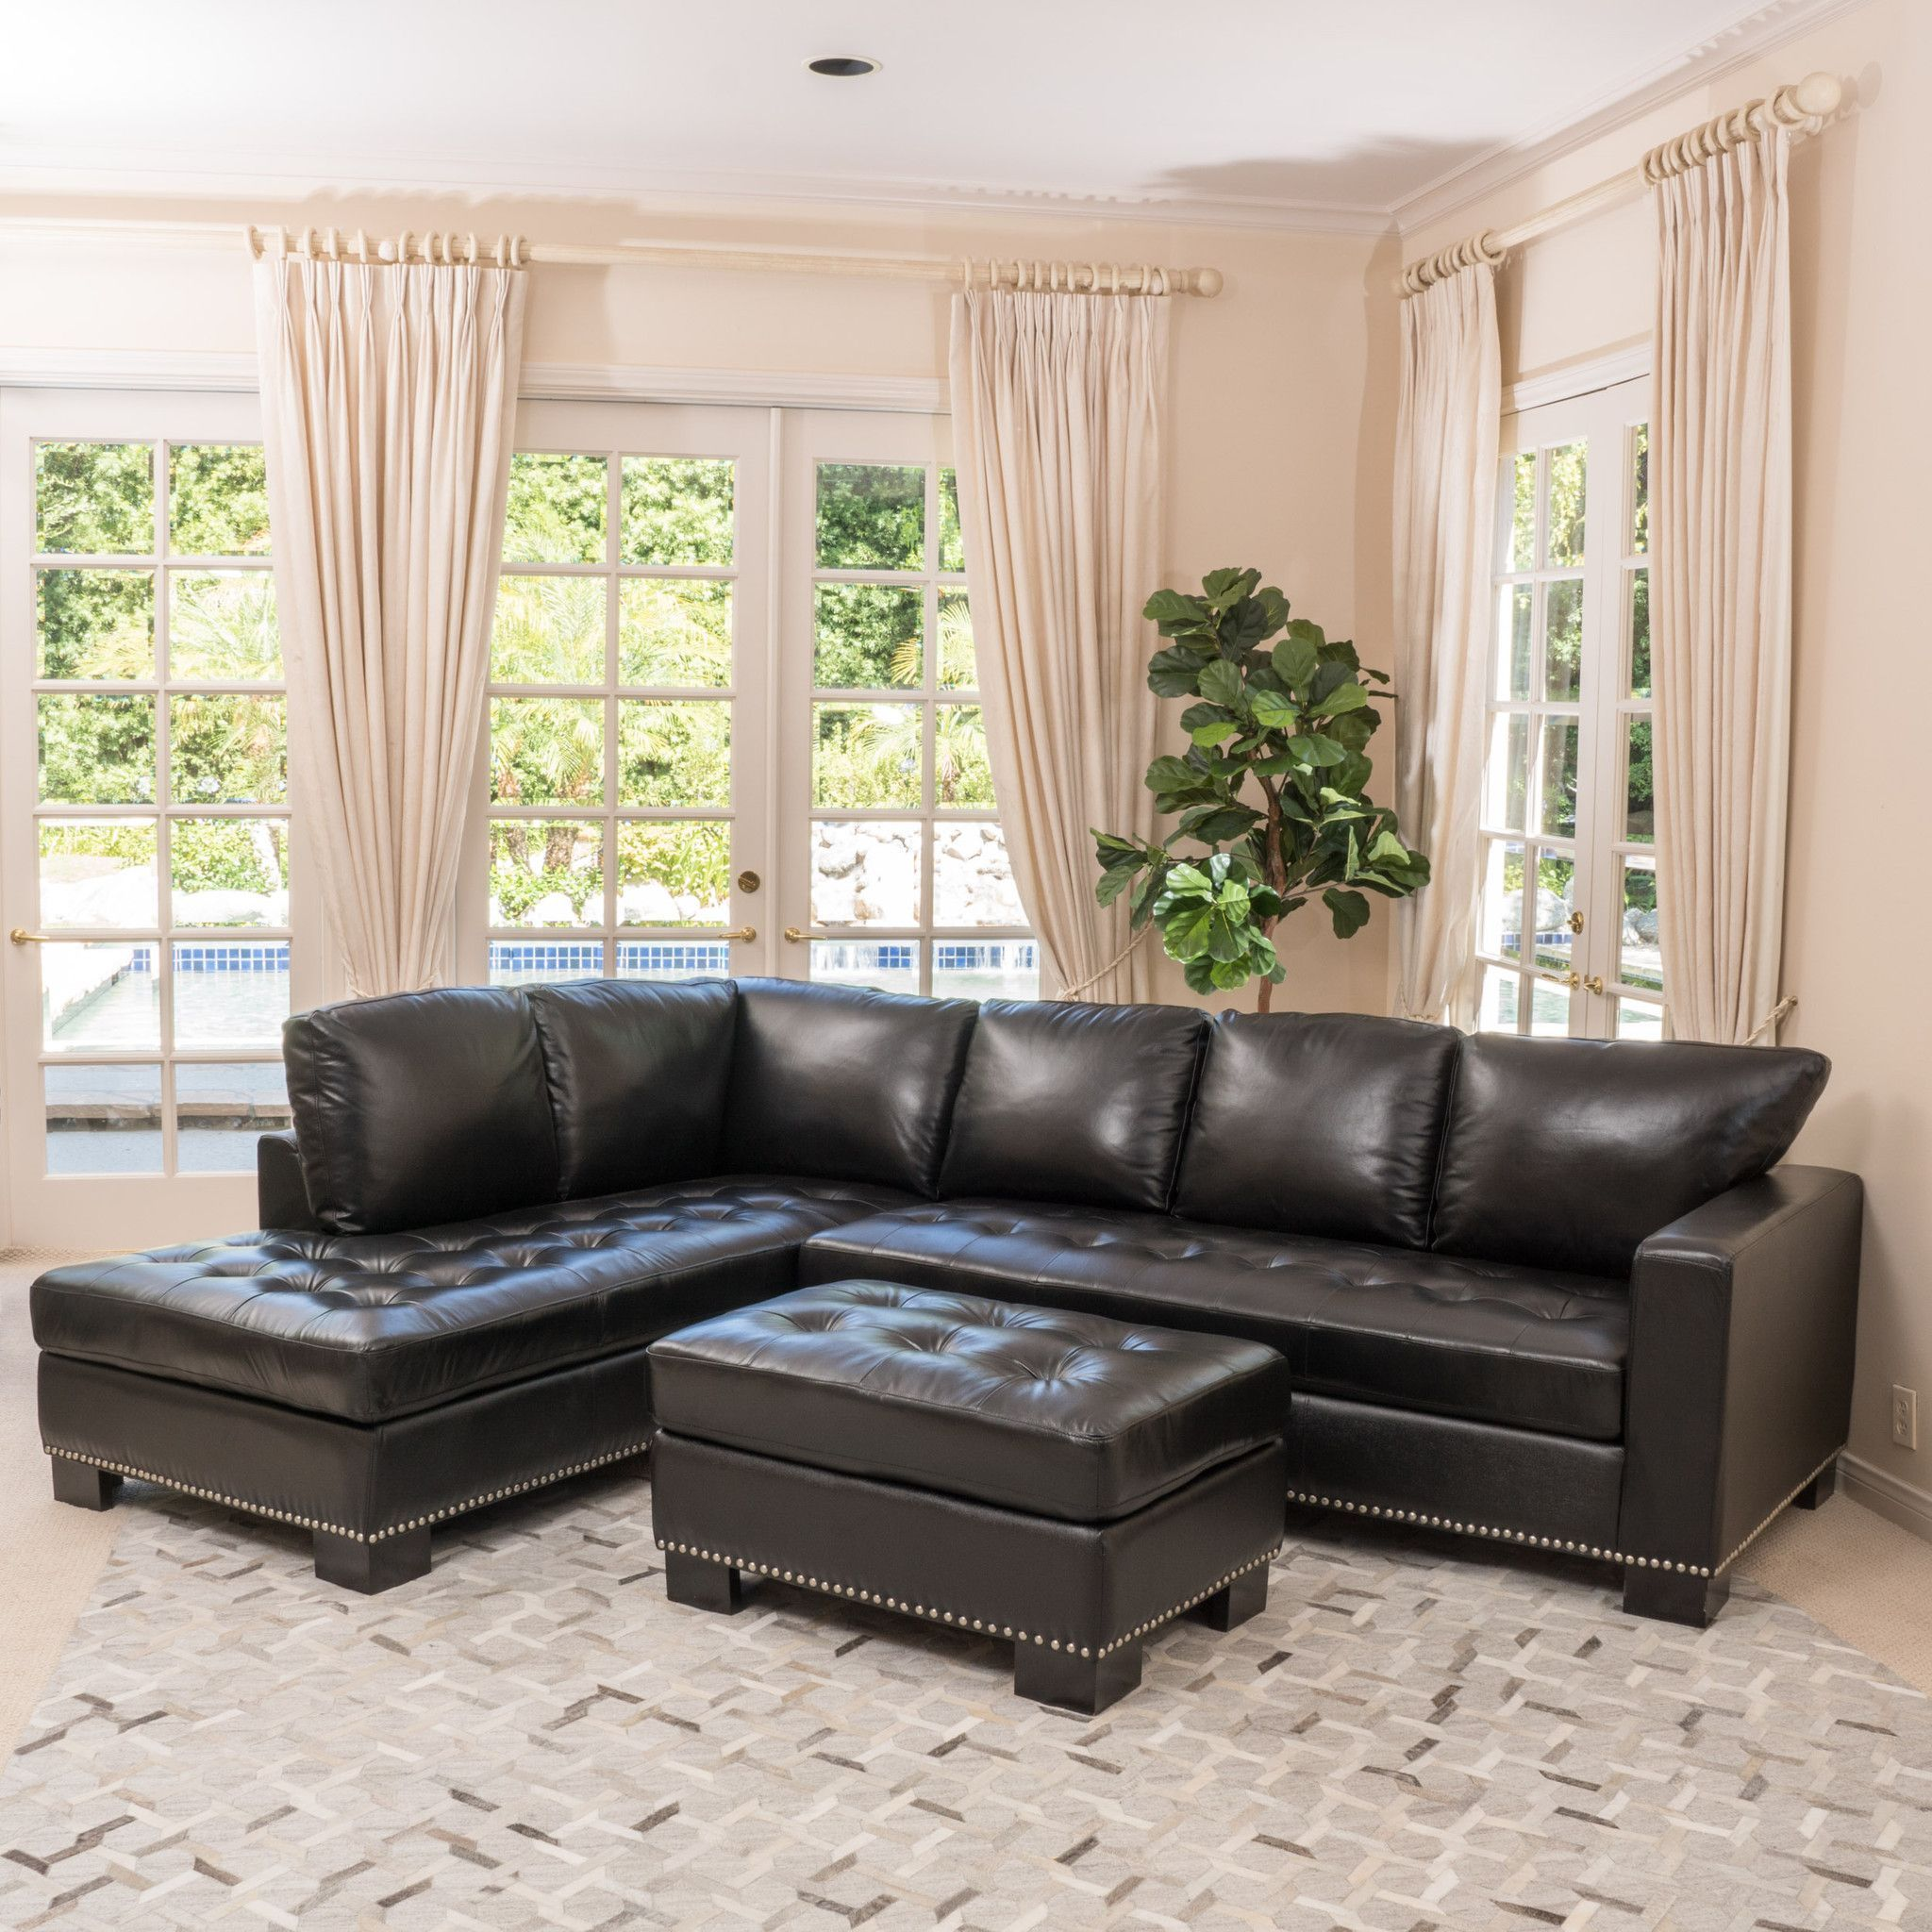 Harinden Contemporary Black Leather Sectional Couch Sectional